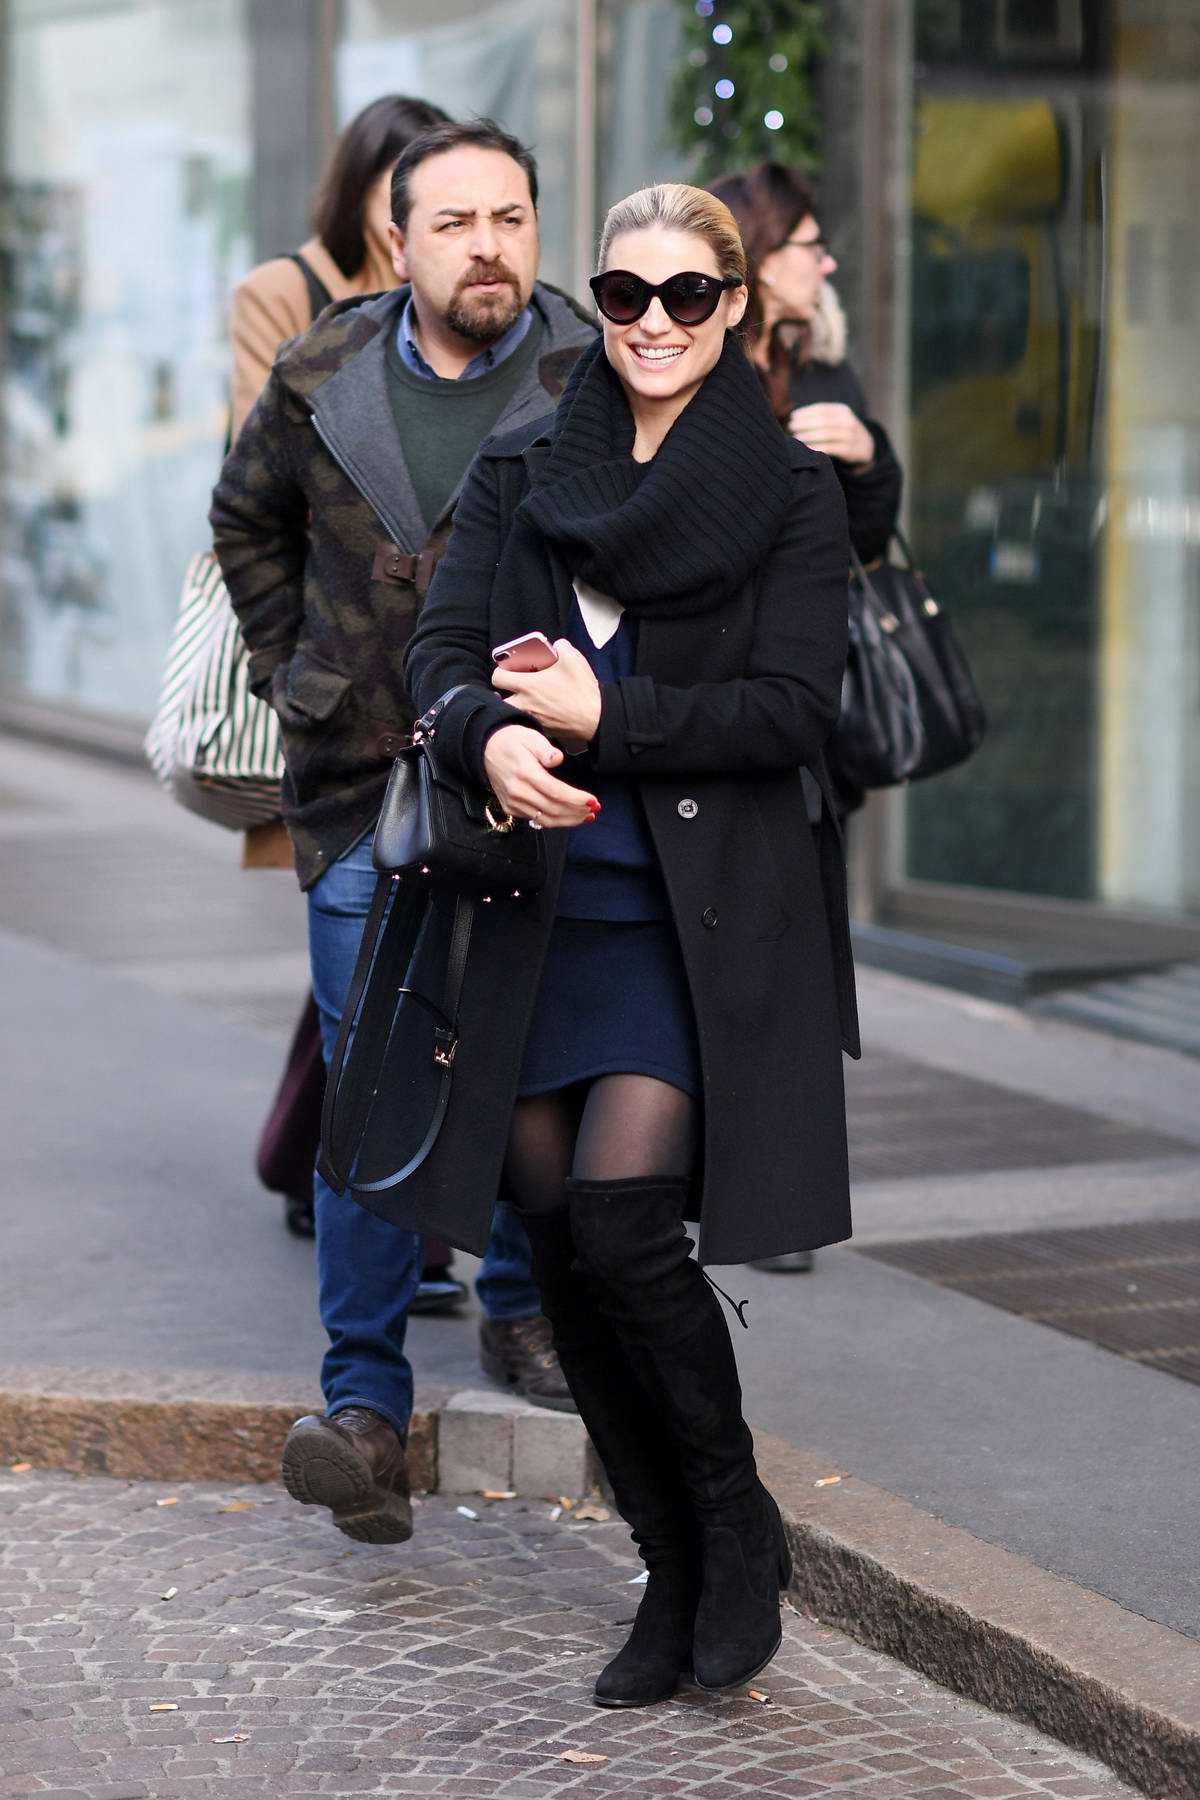 Michelle Hunziker spotted leaving her home in Milan, Italy